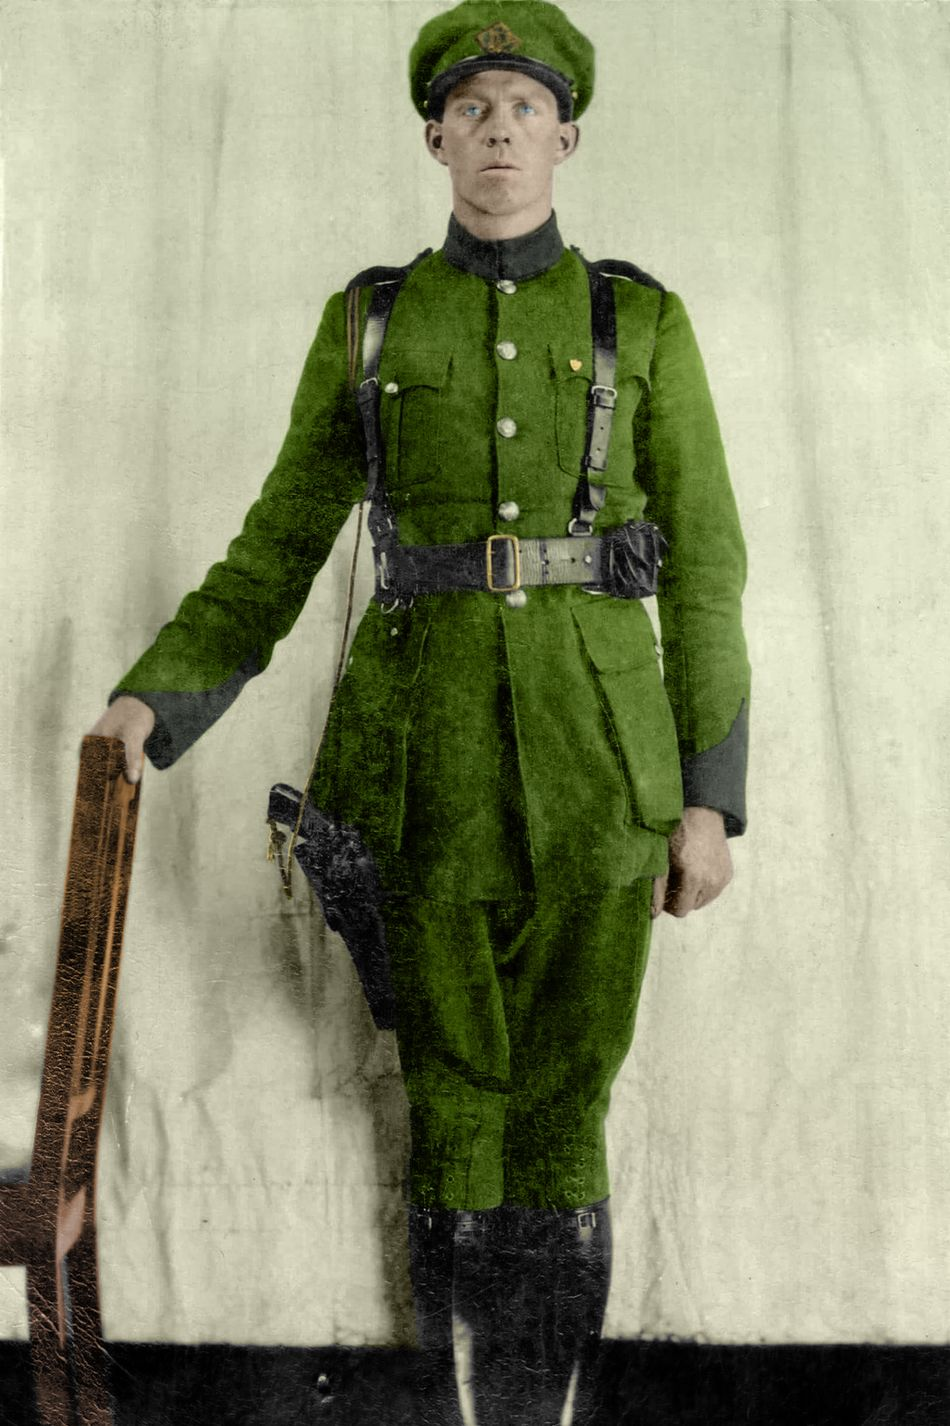 Green Color One Person Front View Standing People Irish Irish Army WWII World War 2 Colorized Hand Tinted Clare